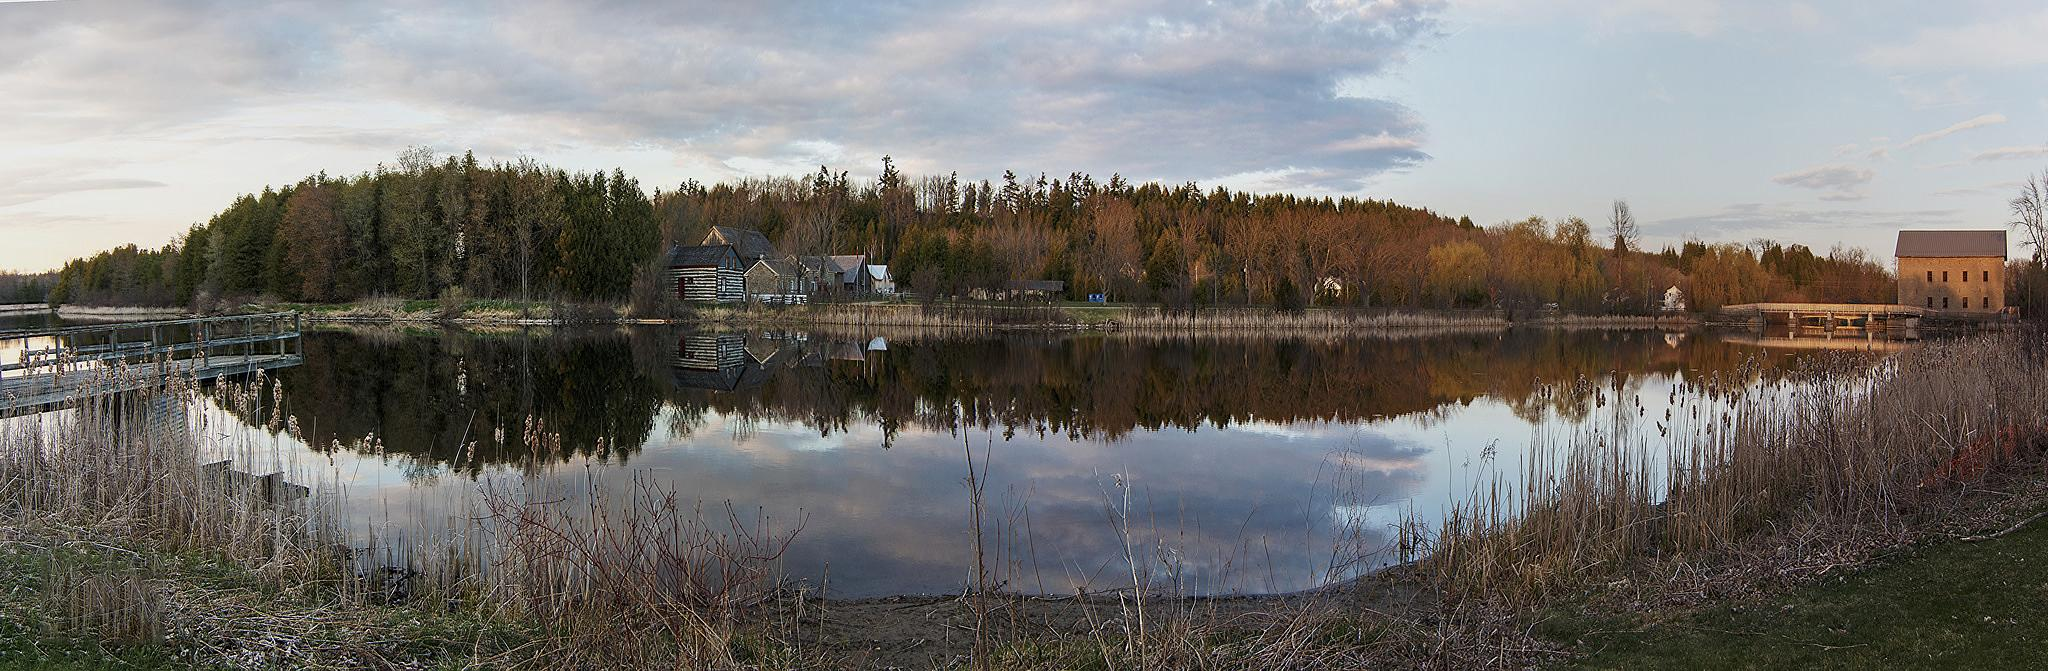 Lang Mill Pond in the Golden Hour by Dave Bremner